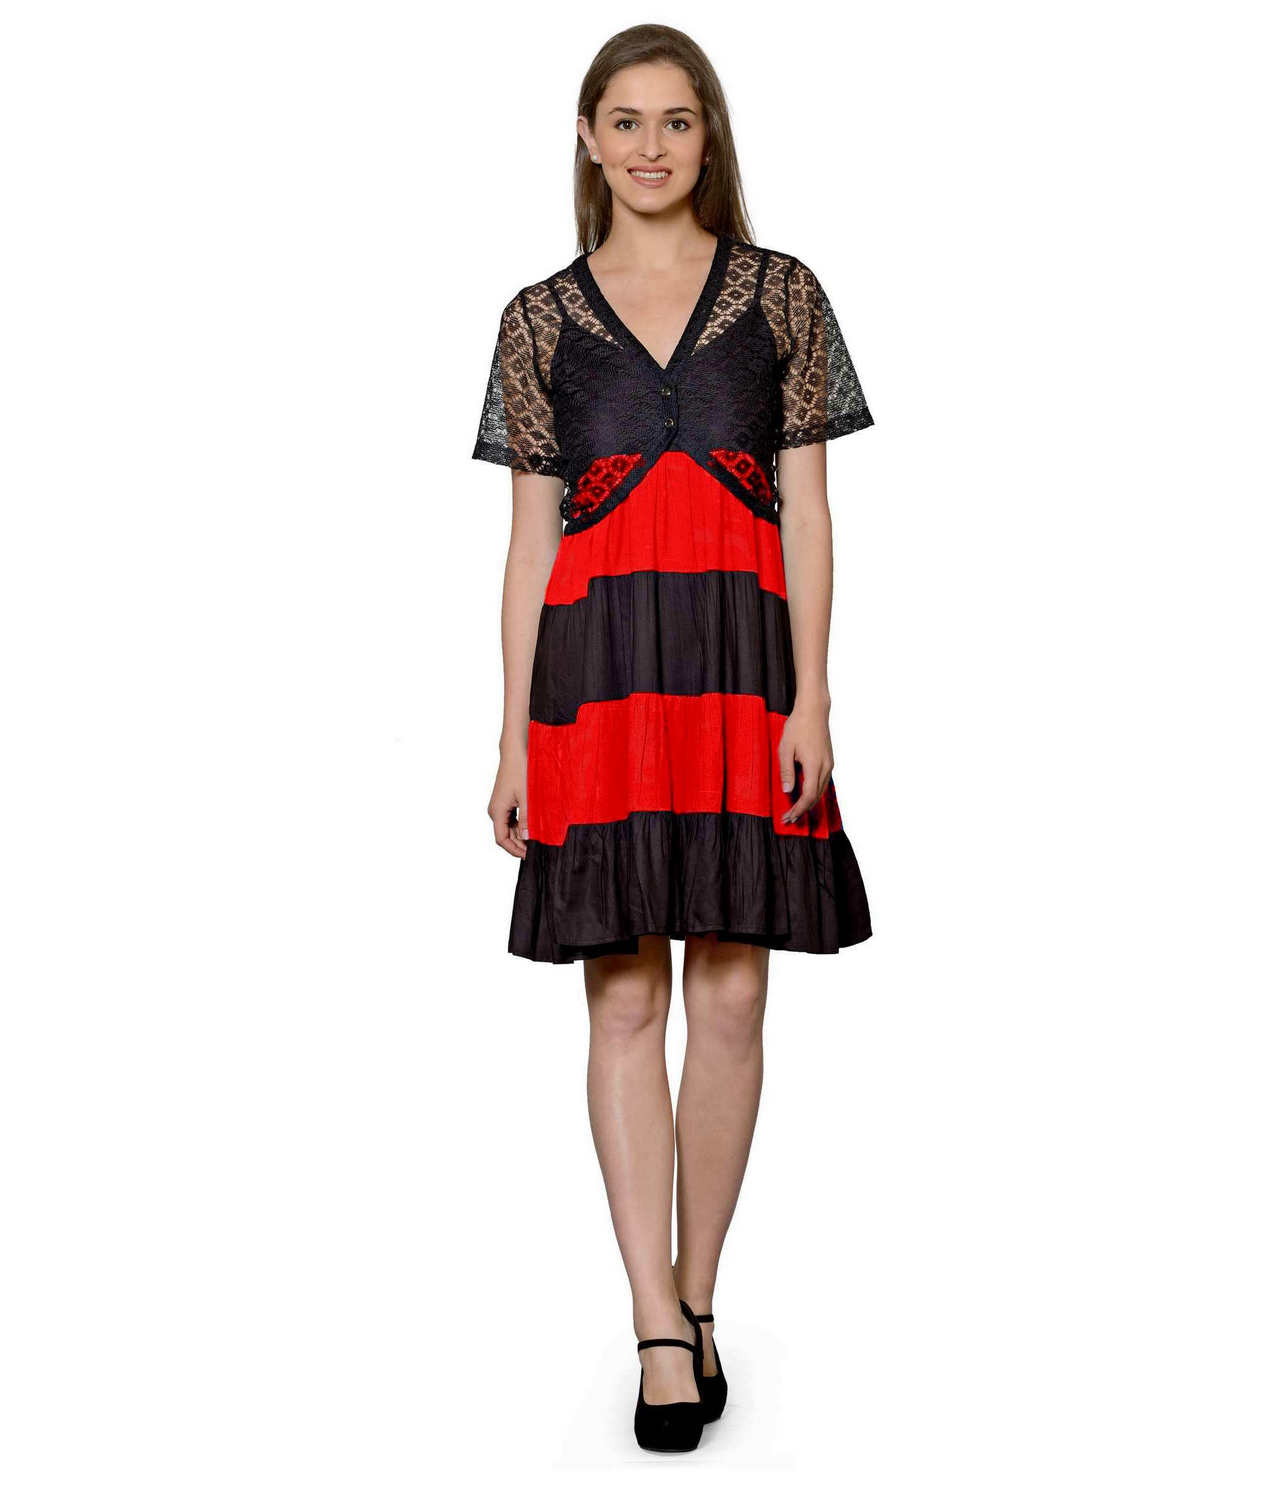 Cocktail Knee Length Dress with Shrug in Black:Red